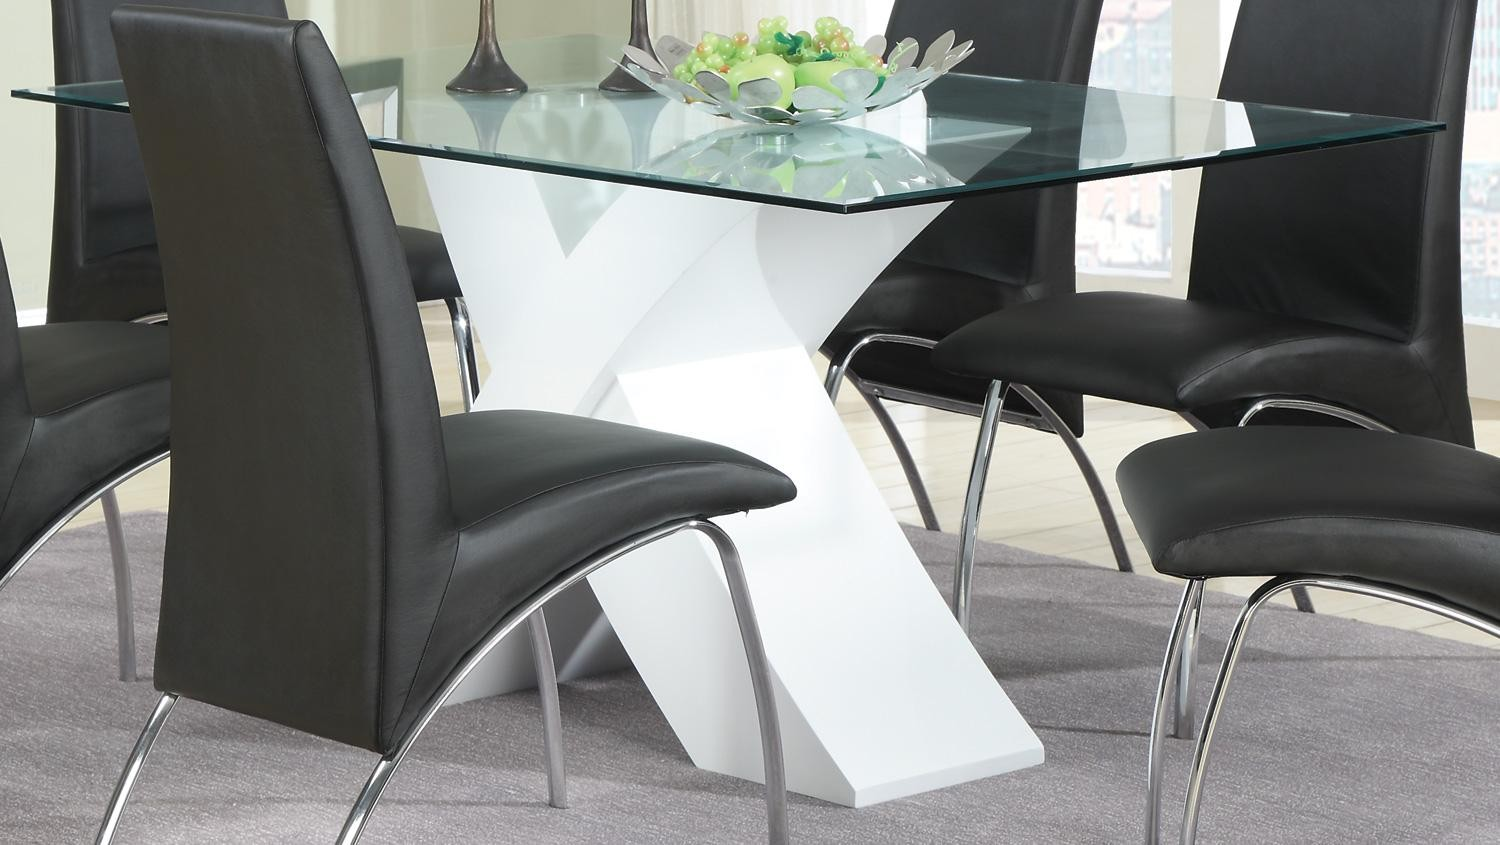 Ophelia white dining table from coaster 120821 coleman - Comedores de cristal ...